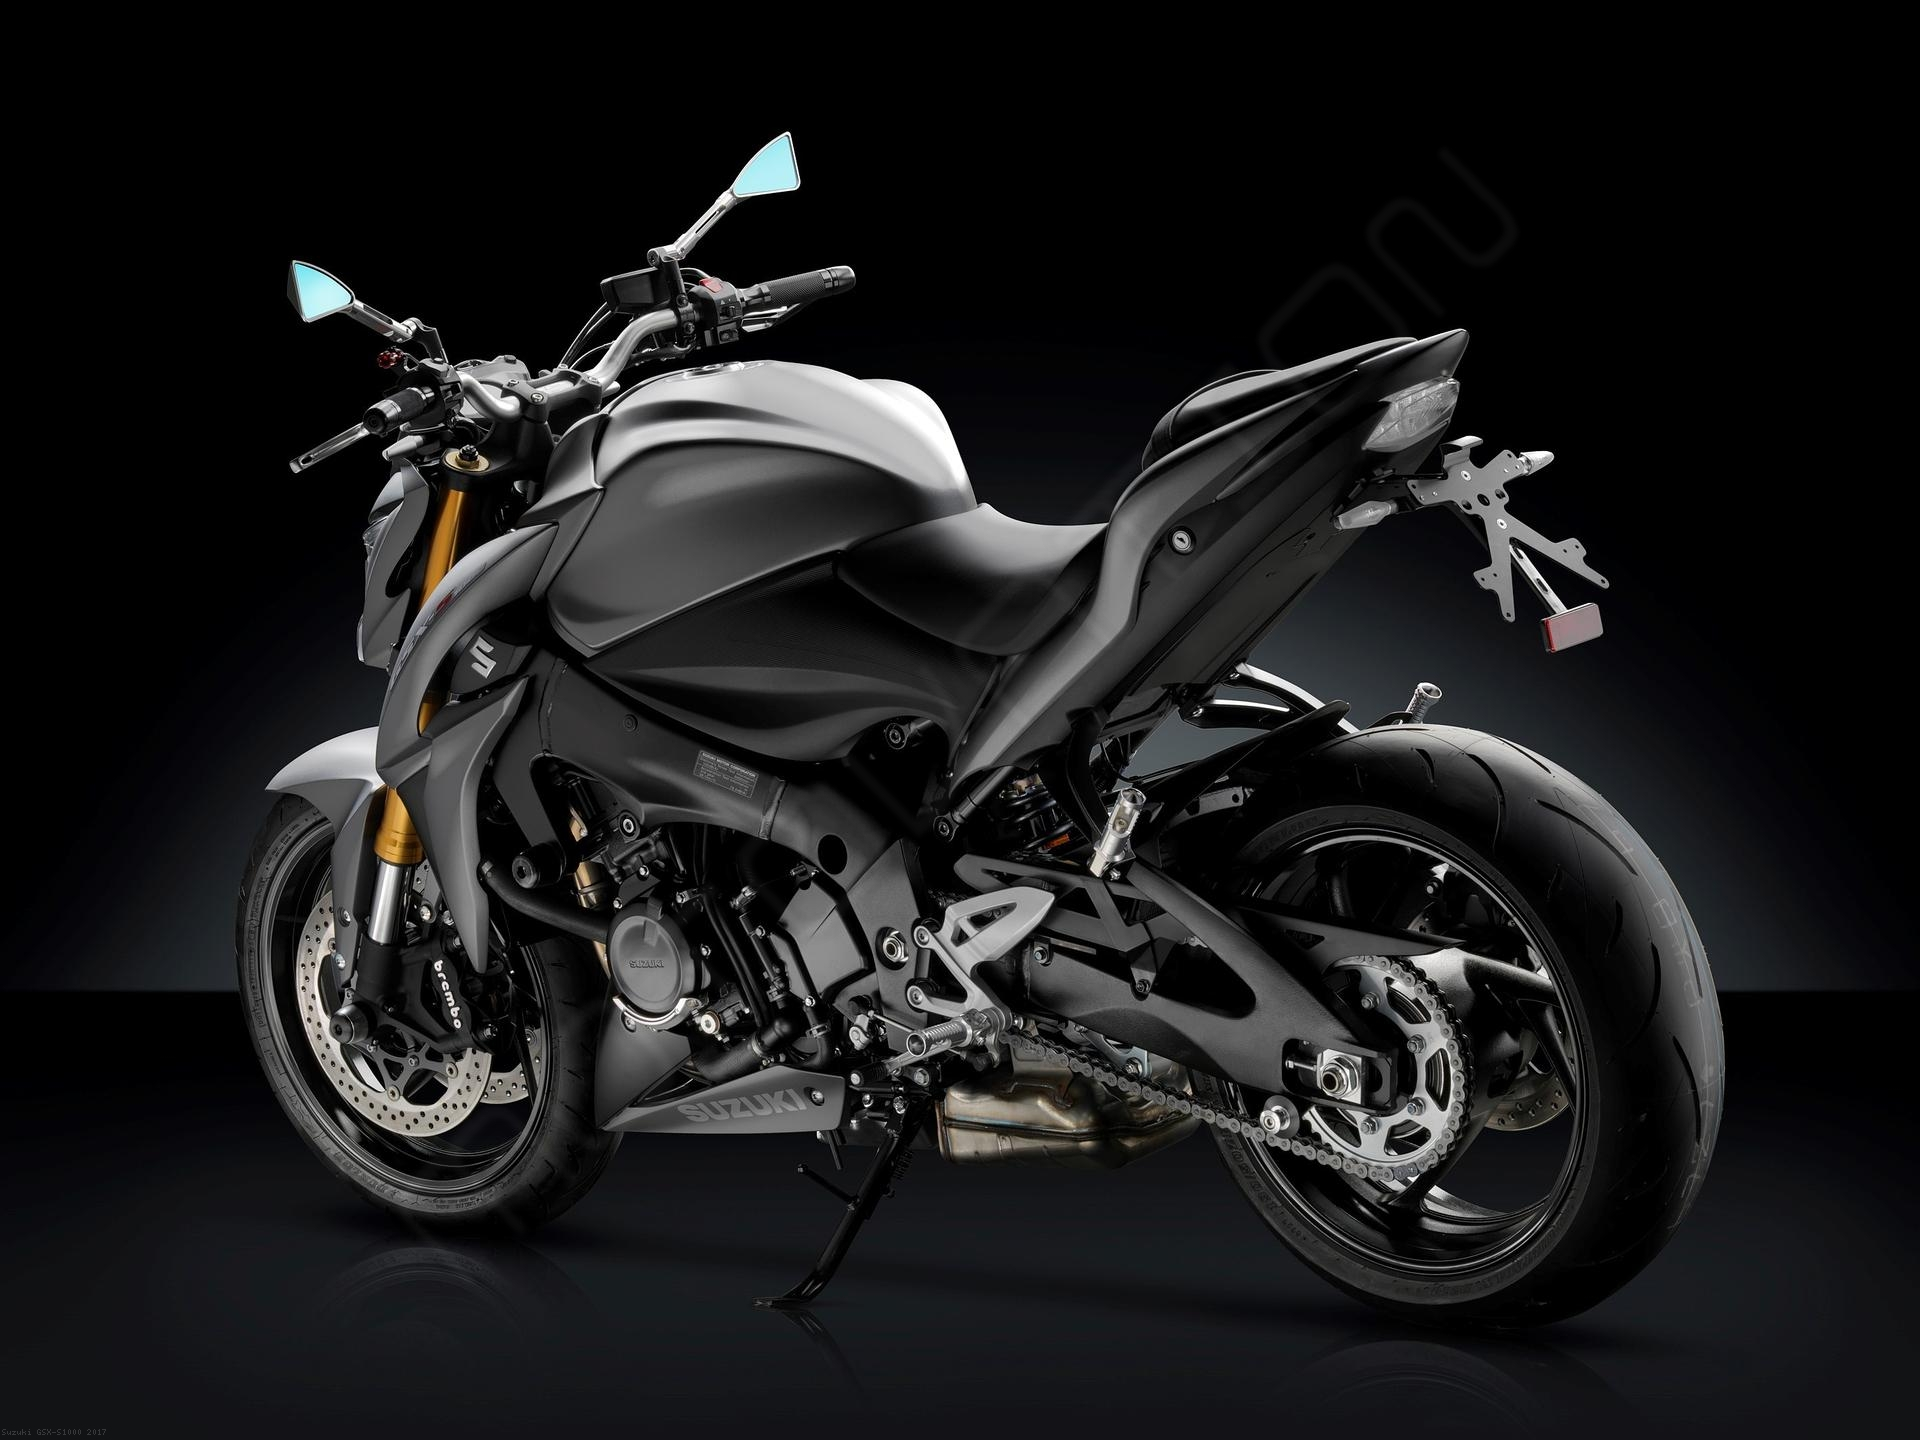 2018 suzuki gsx s1000. interesting suzuki for 2018 suzuki gsx s1000 l